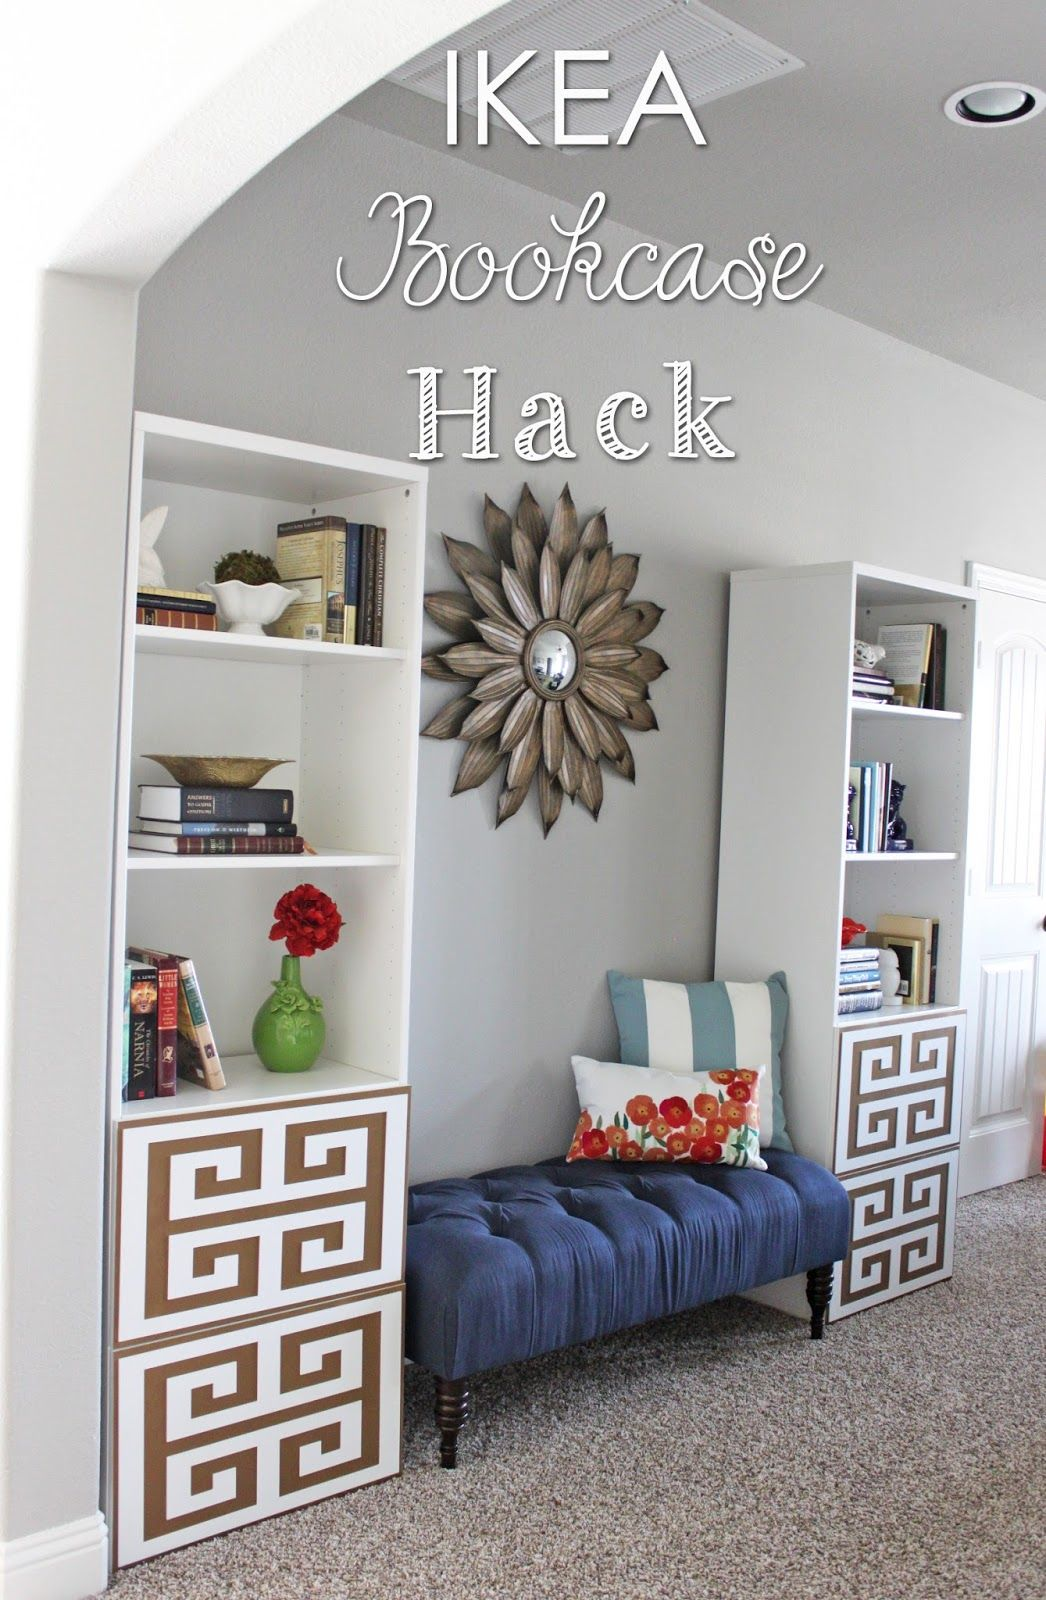 Ikea Bücherregal Kinderzimmer Ikea Bookshelf Hack Billy Bücherregal Mit Türen Im